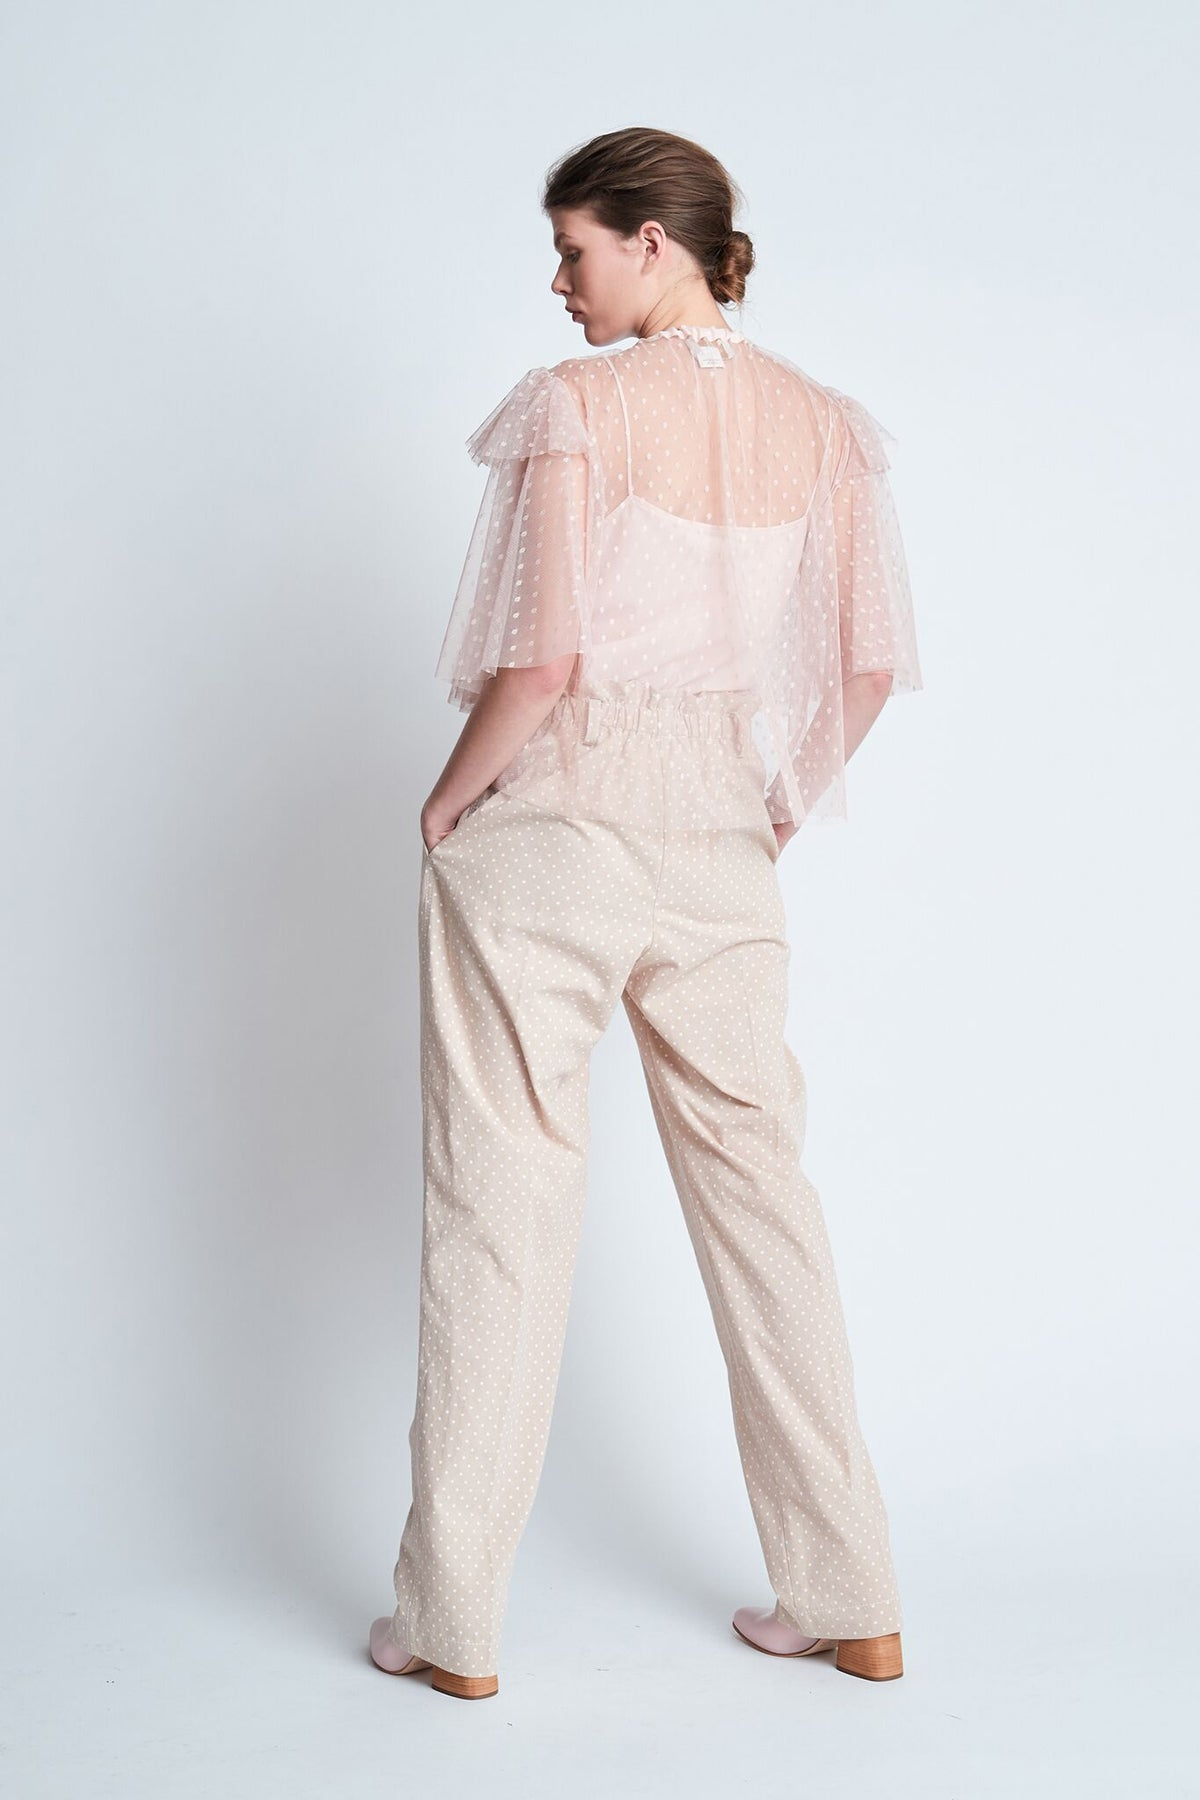 Karen Walker Pimpernal Top // Pink